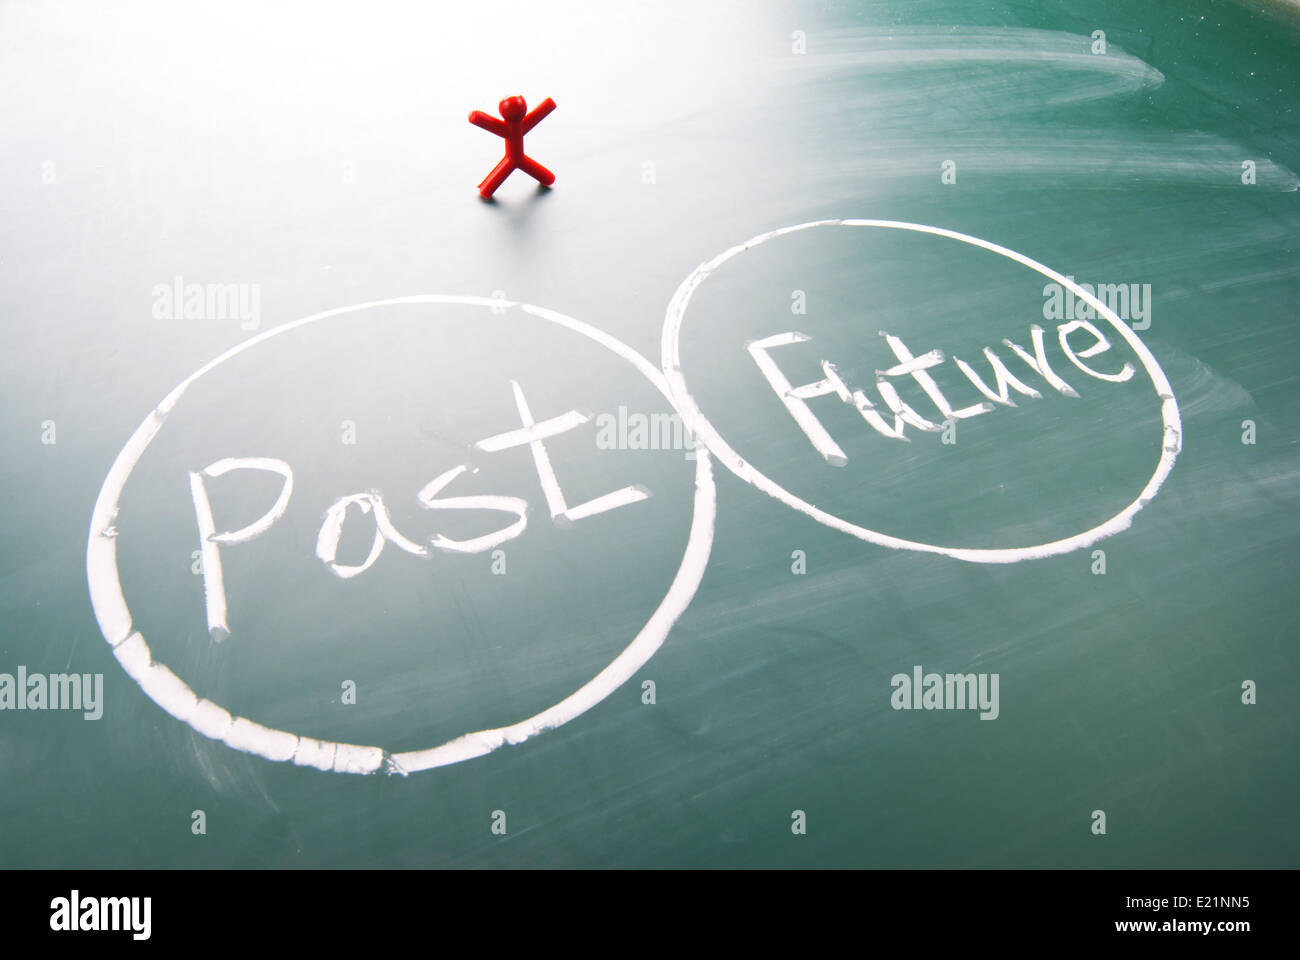 One man between past and future. - Stock Image